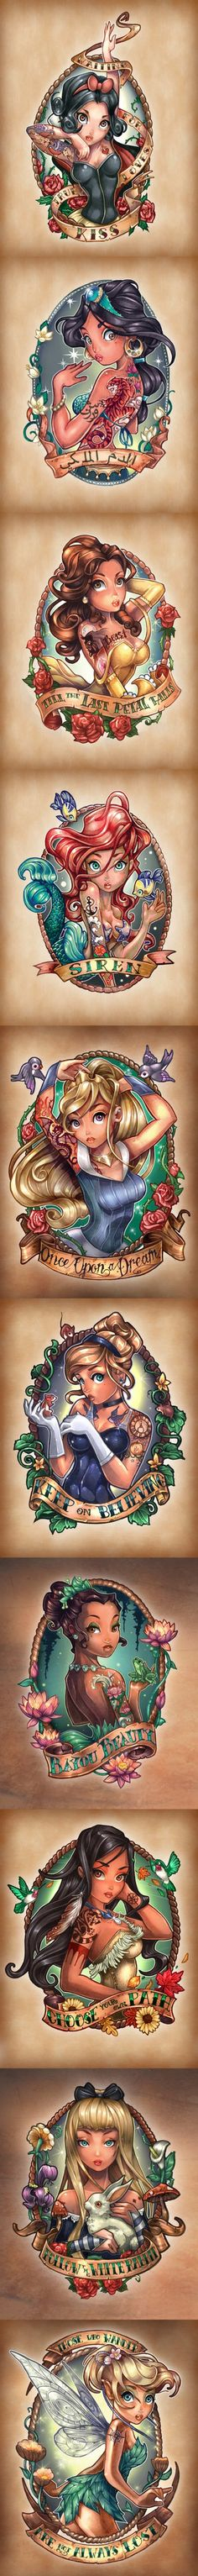 8 Disney Princesses as Tattooed Pinup Girls! ( + Alice and Tinkerbell ) might have to get Ariel or Tinkerbell ! They're my fav Disney characters !